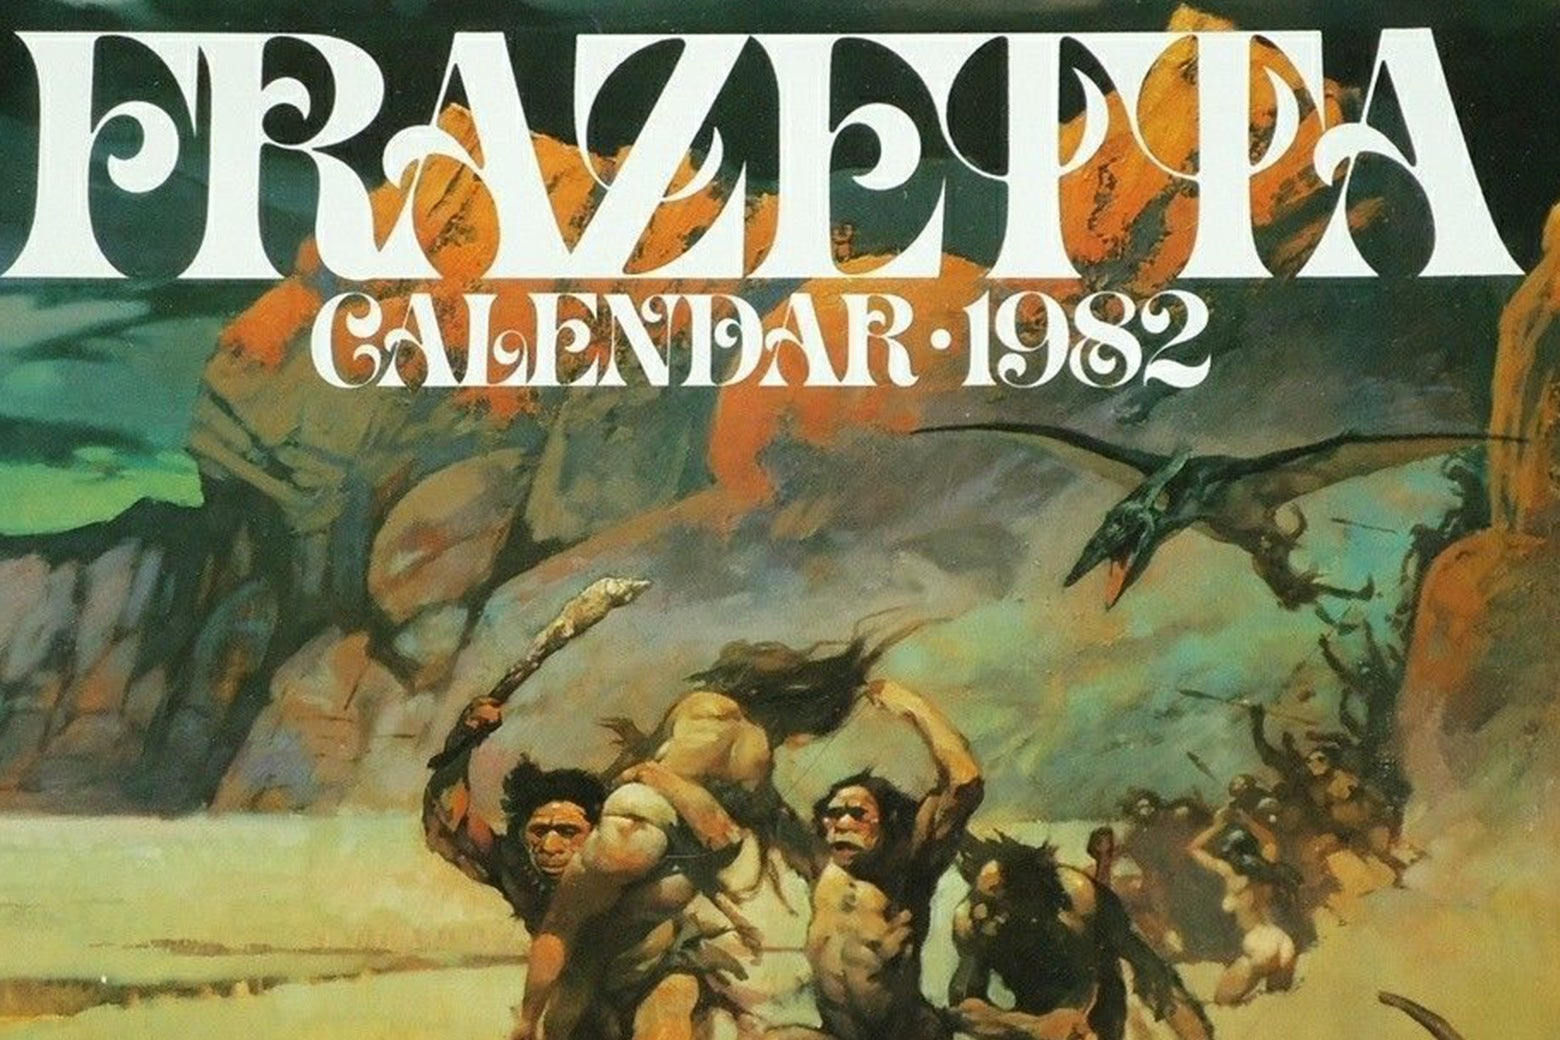 The cover of the 1982 Frank Frazetta calendar, with a pack of cavemen carrying off a woman.